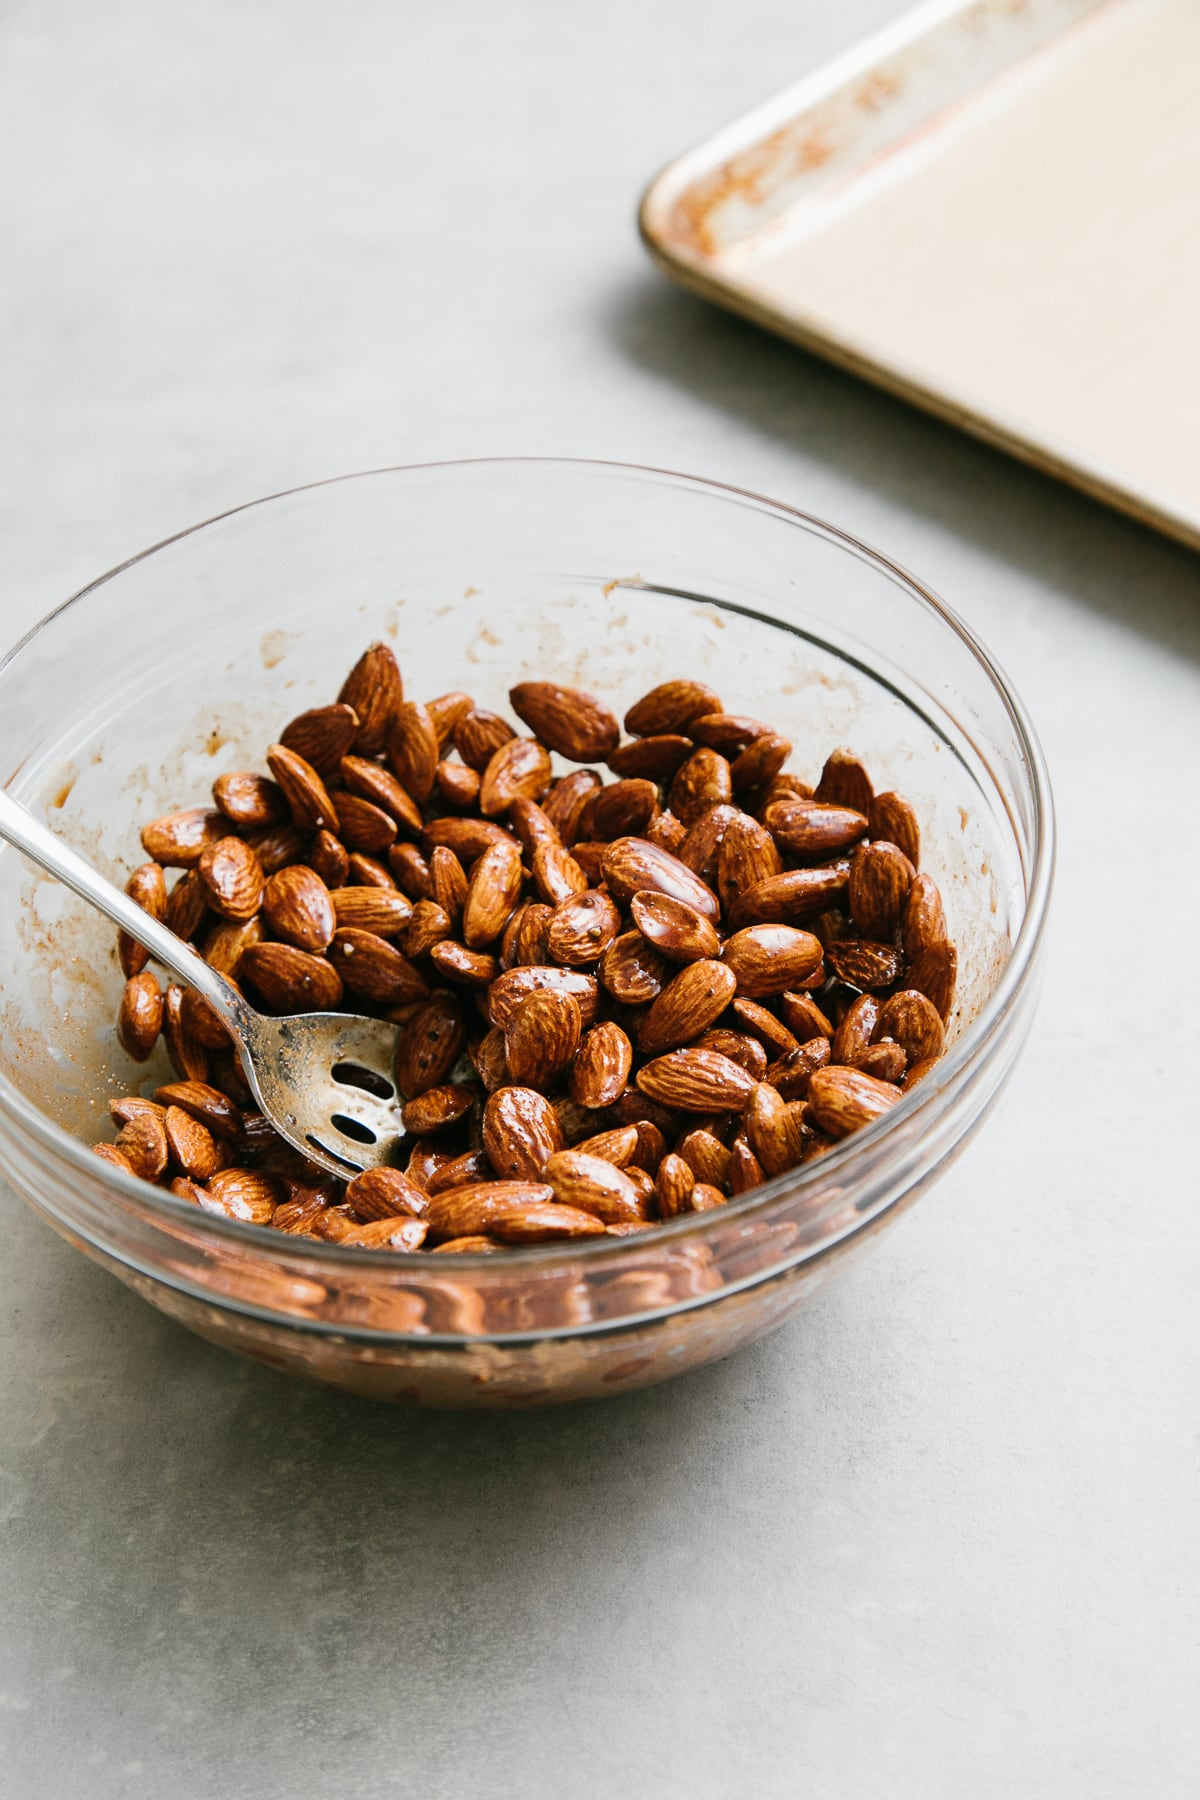 side angle view showing the process of mixing almonds with chocolate chai glaze in a glass mixing bowl.